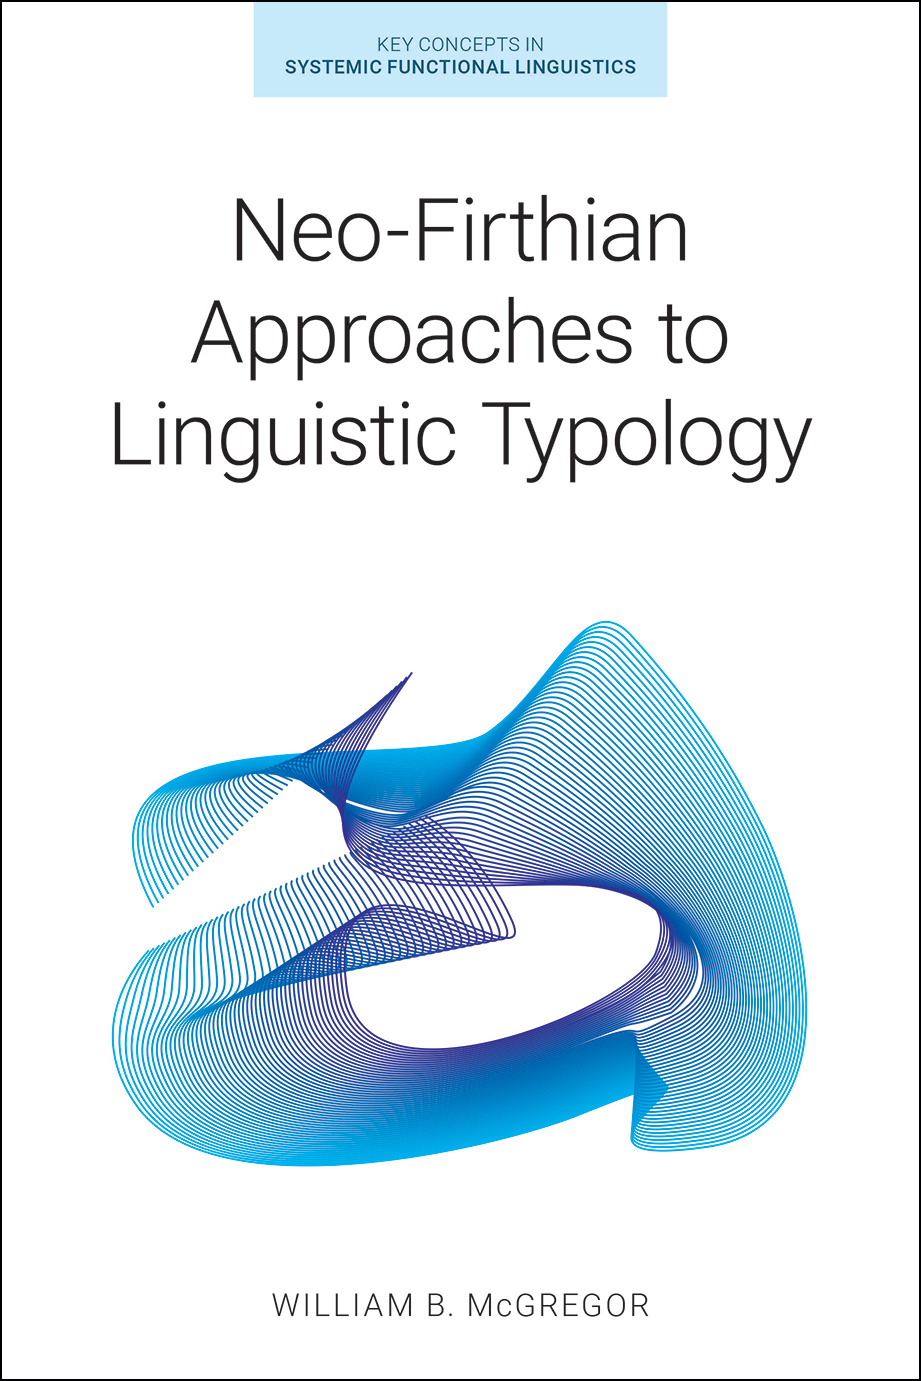 Neo-Firthian Approaches to Linguistic Typology - William B. McGregor